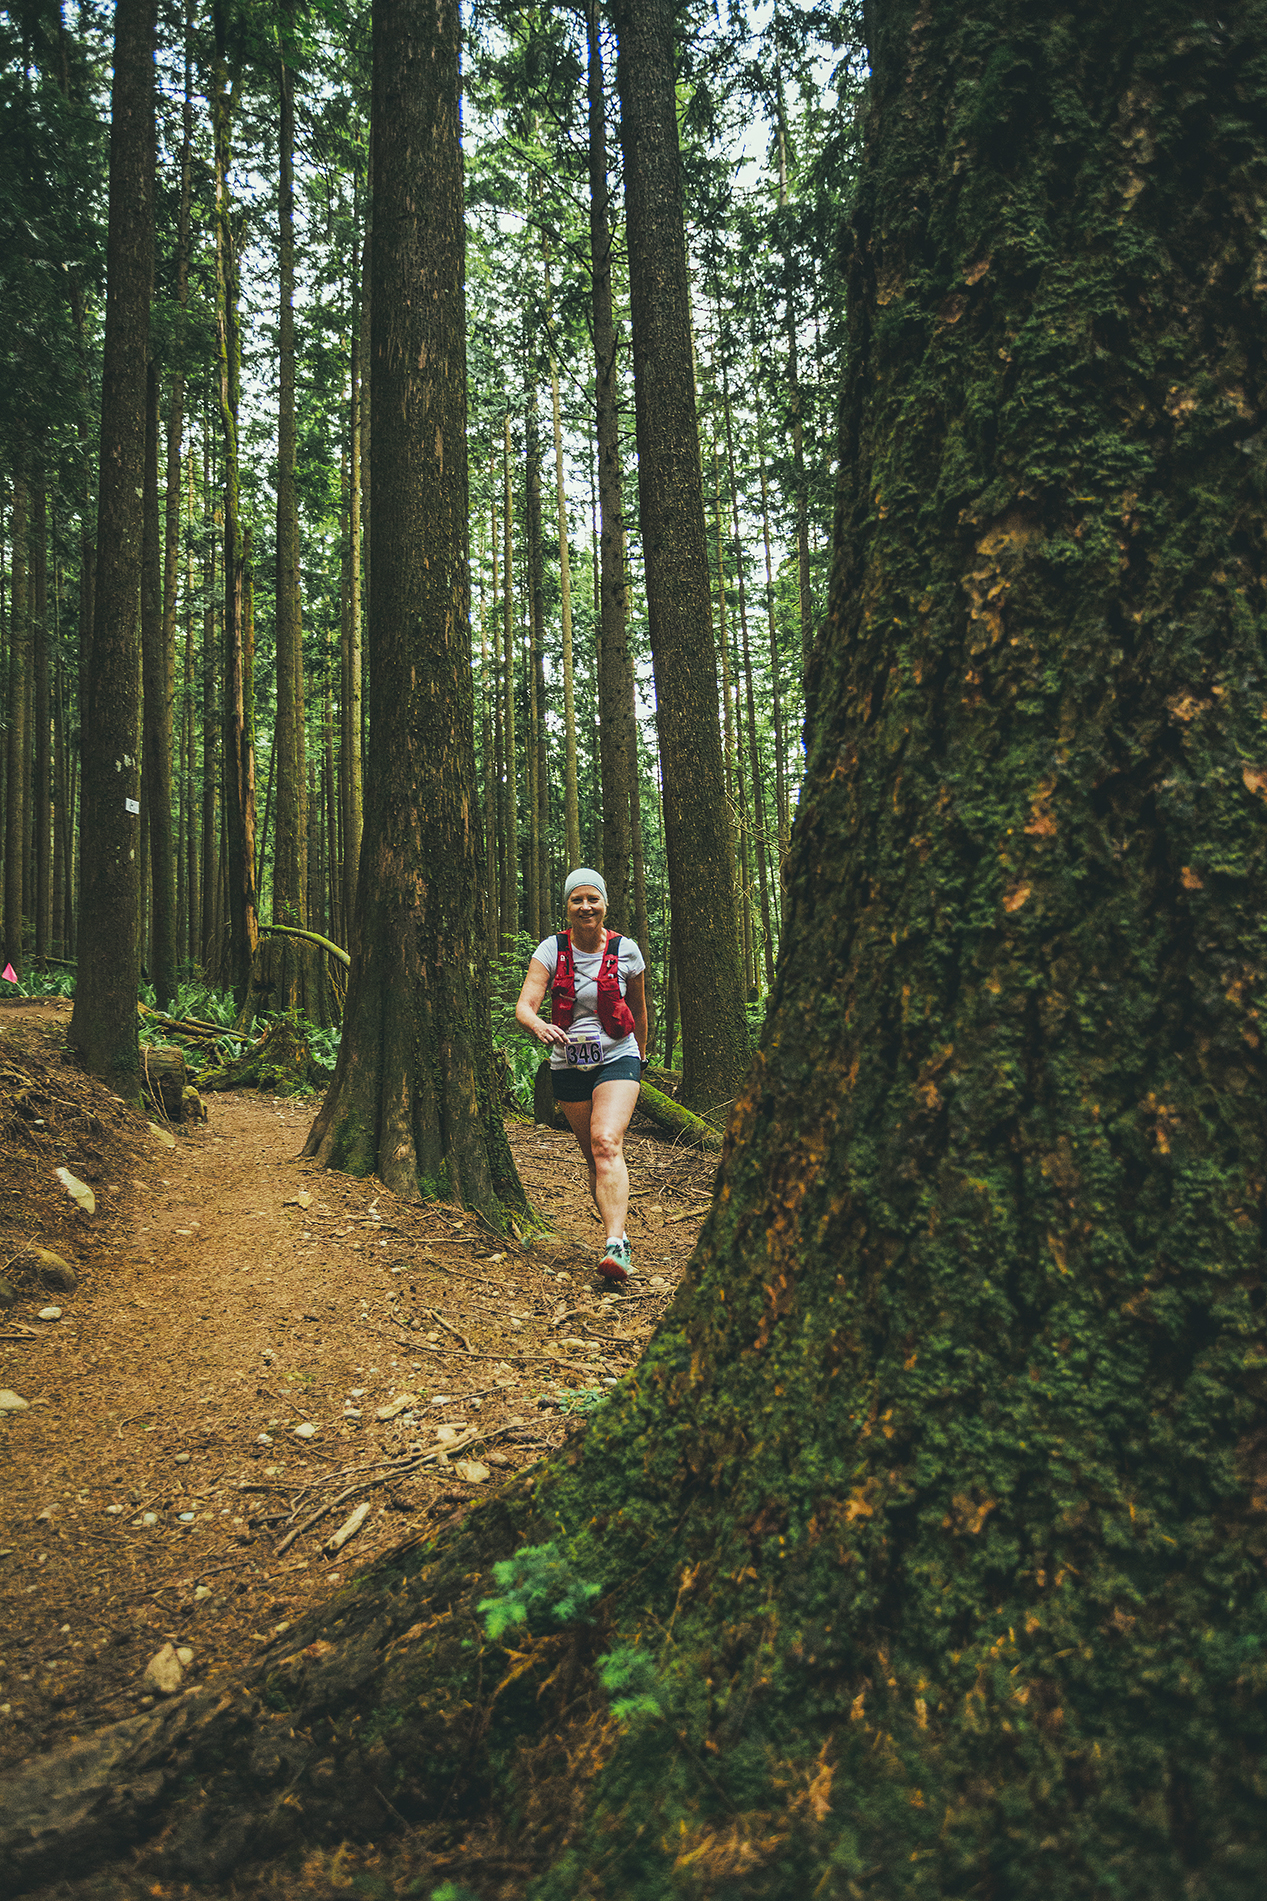 Fraser Valley Trail Races - Bear Mountain - IMG_2967 by Brice Ferre Studio - Vancouver Portrait Adventure and Athlete Photographer.jpg